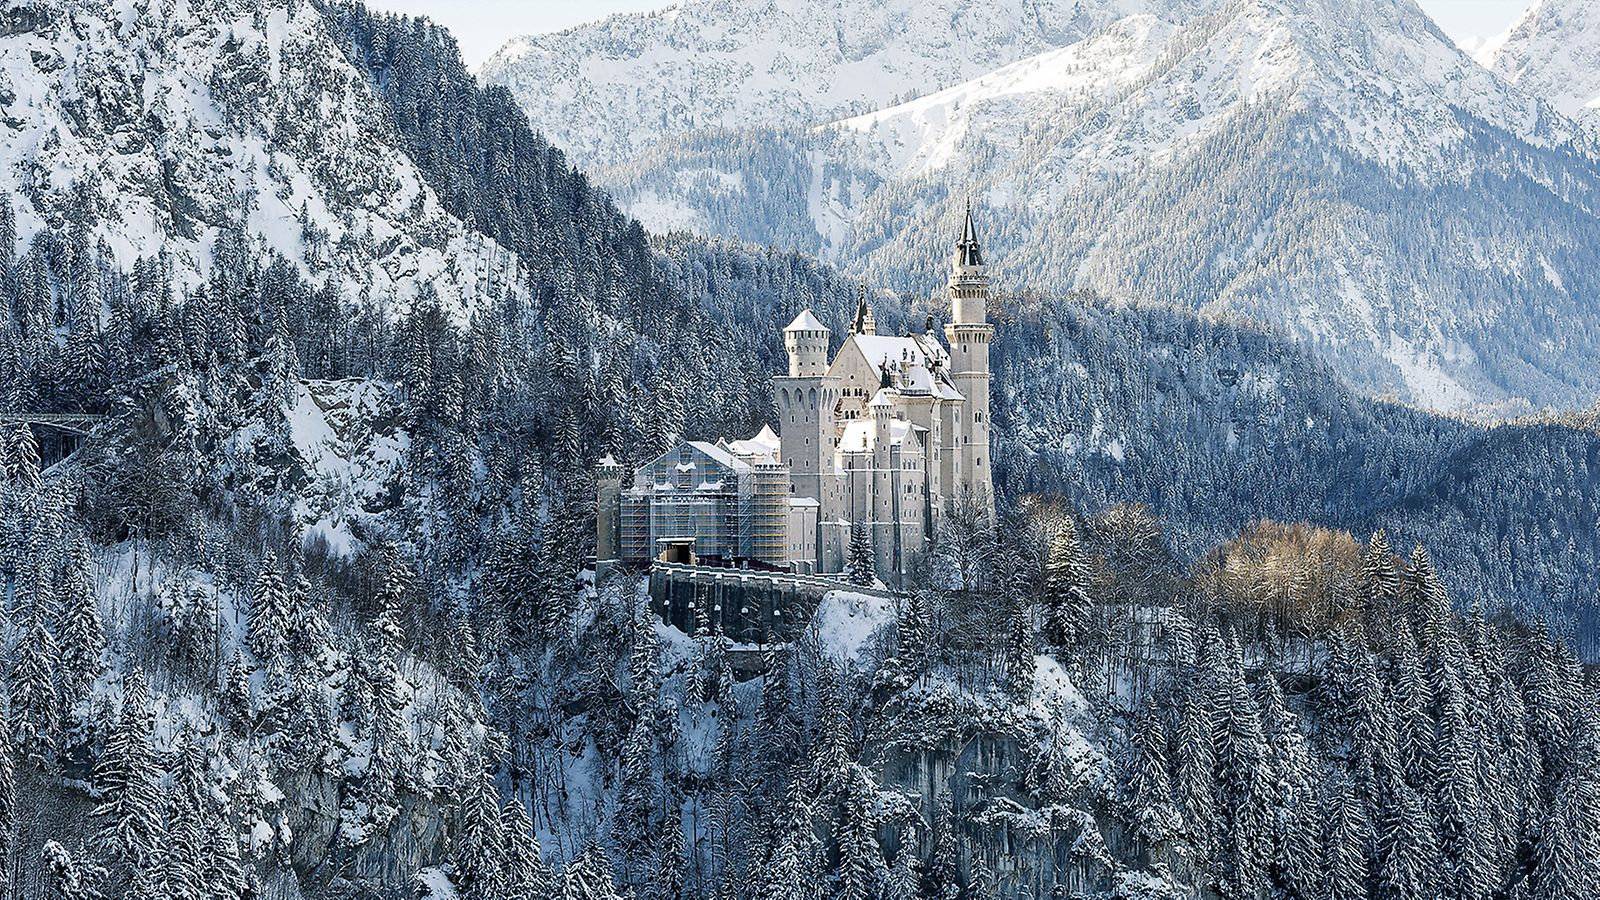 Neuschwanstein Castle is one of Germany's most famous sights. Every year around 1.5 million tourists from all over the world visit the cultural monument near Füssen.